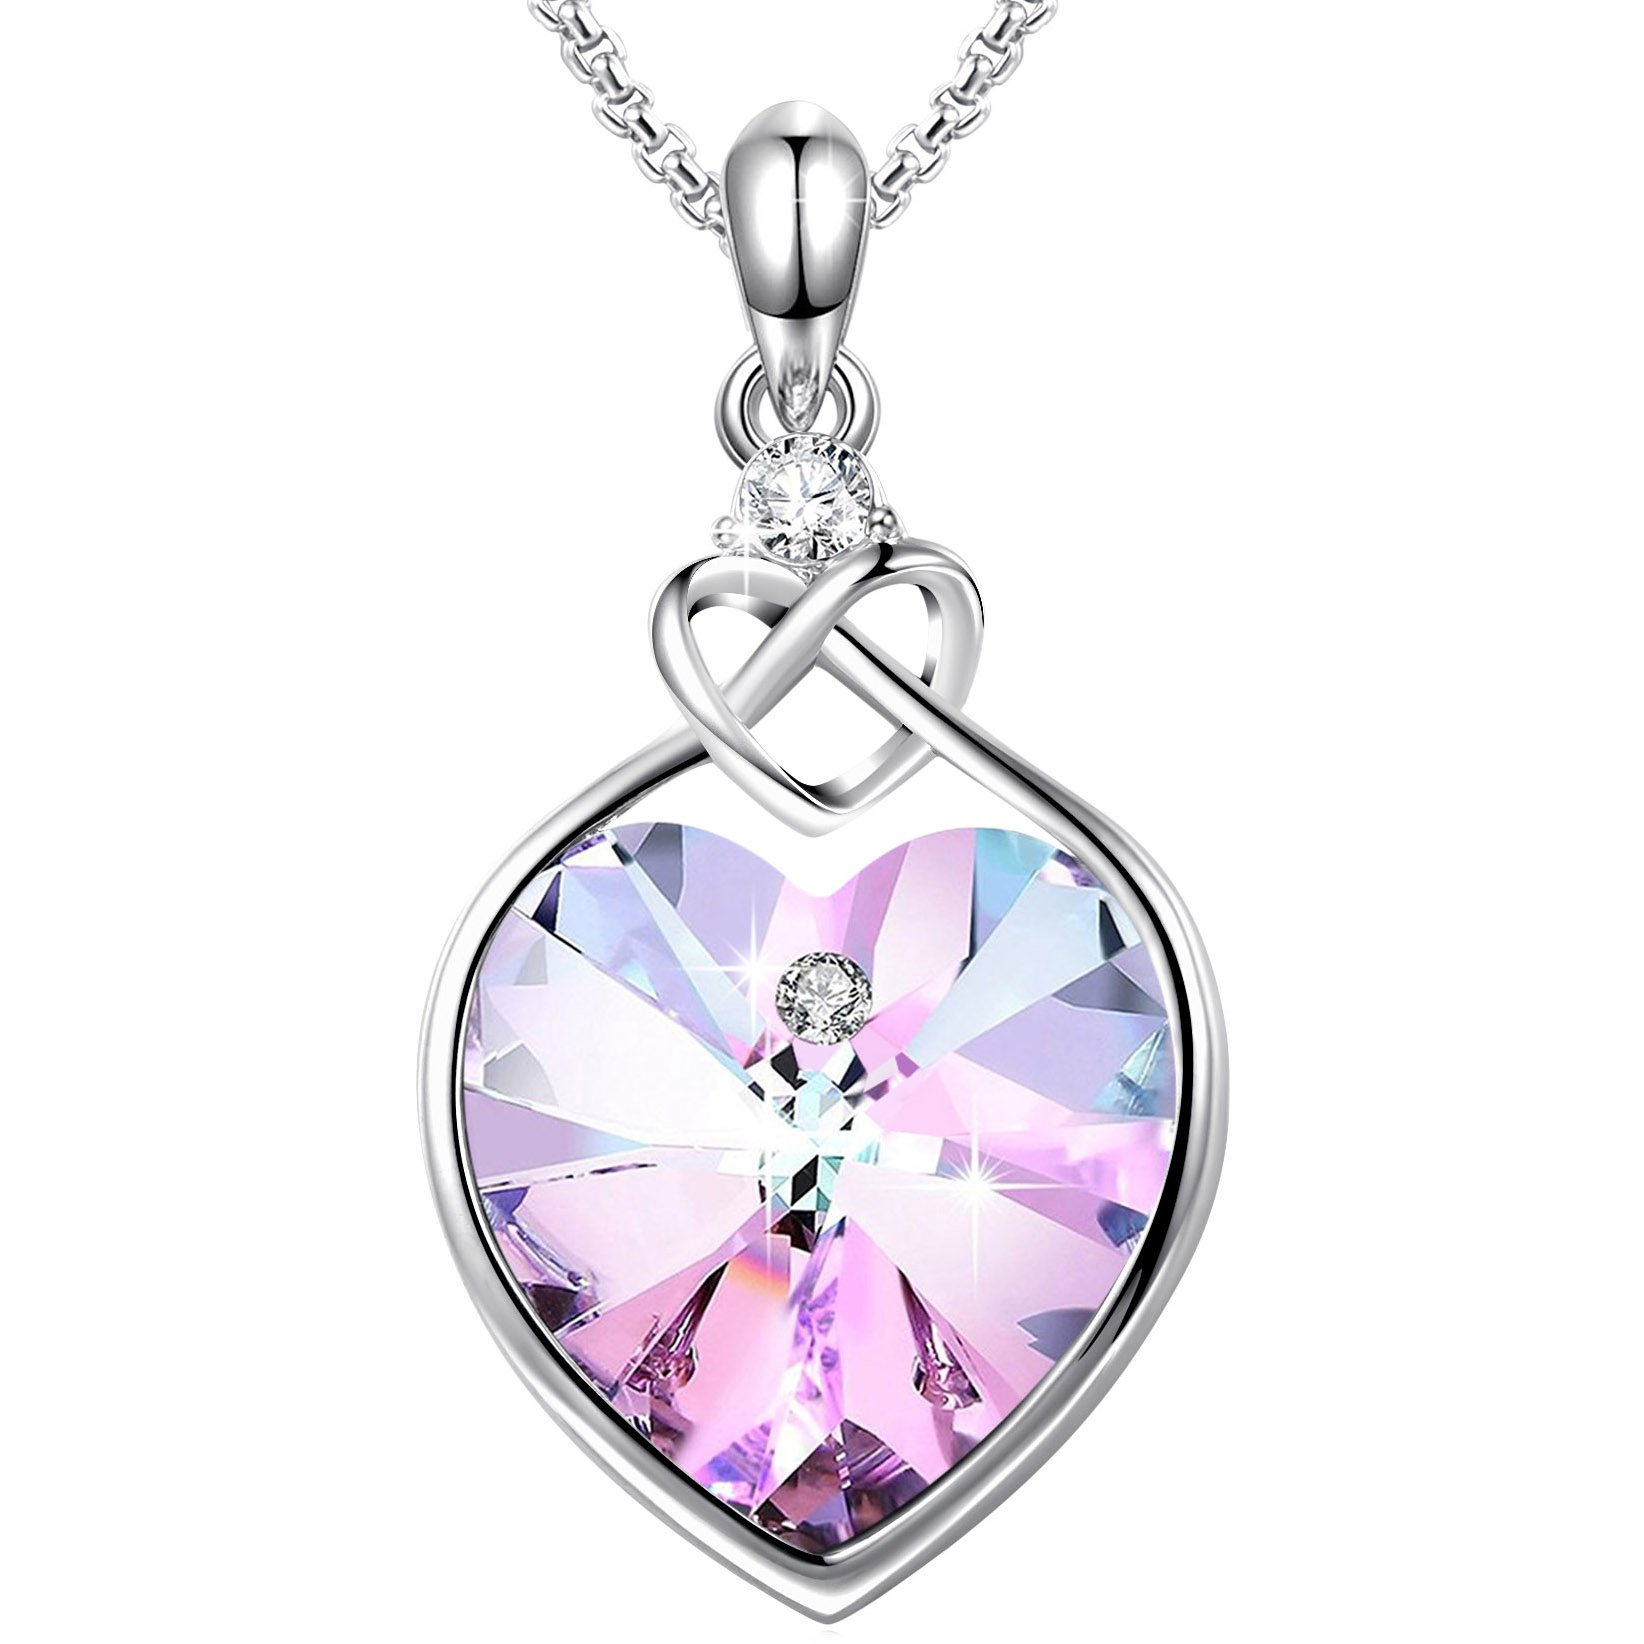 Angelady''Love Guardian Heart Pendant Necklace Crystal from Swarovski,Gift for Women Birthday Anniversary (Purple Pink-2)